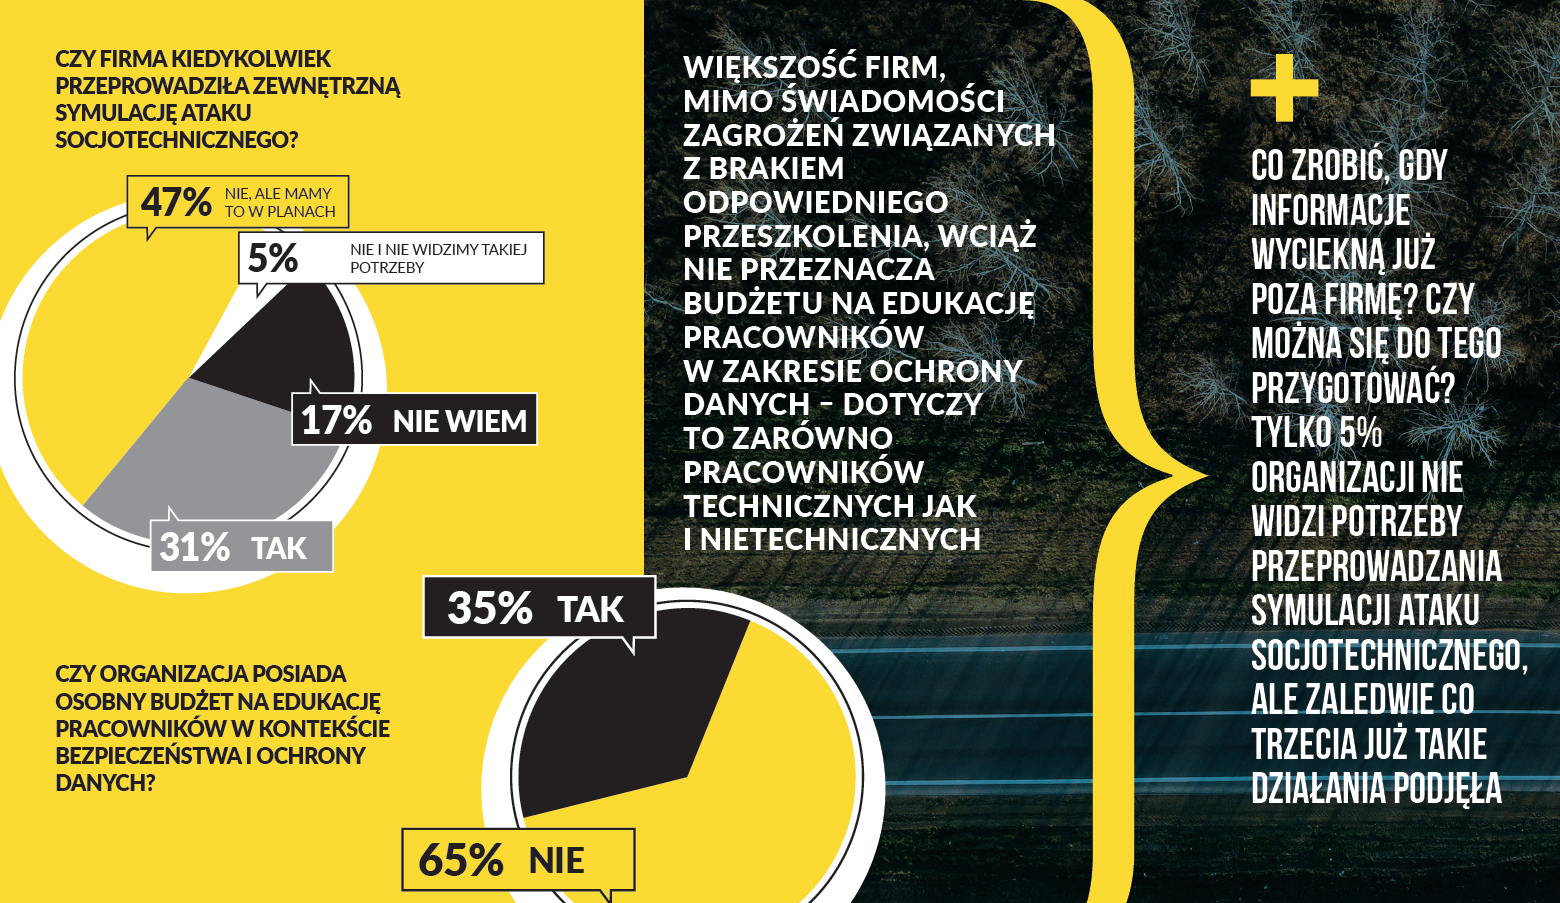 Digital Excellence & CIONET Poland - Security Excellence Report - co zrobic jak informacje wyciekna poza firme Security Excellence 2019